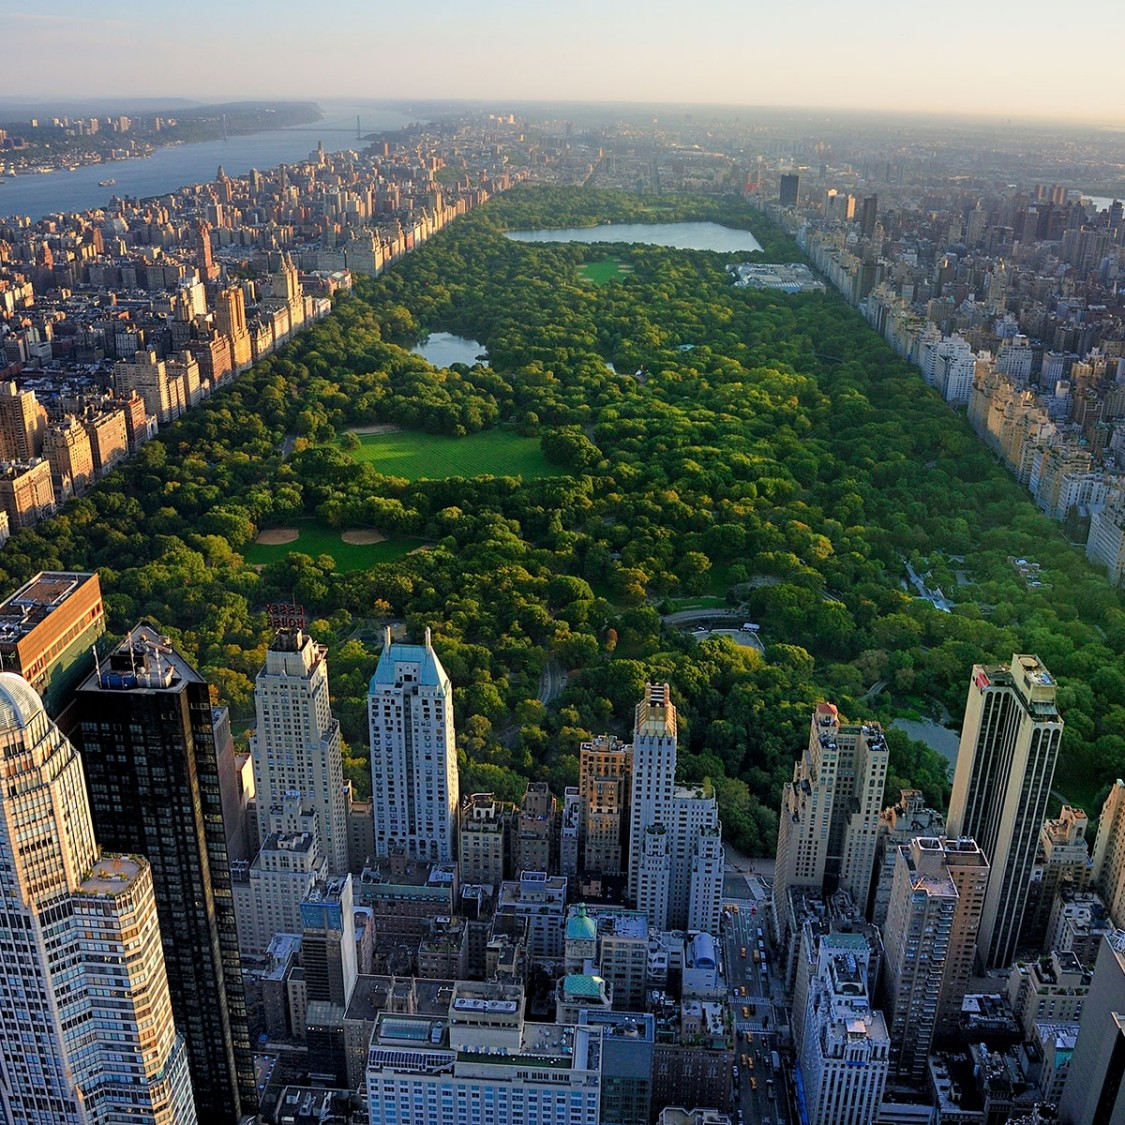 Moody aerial view of Central Park in New York as the green heart of the city surrounded by tall buildings